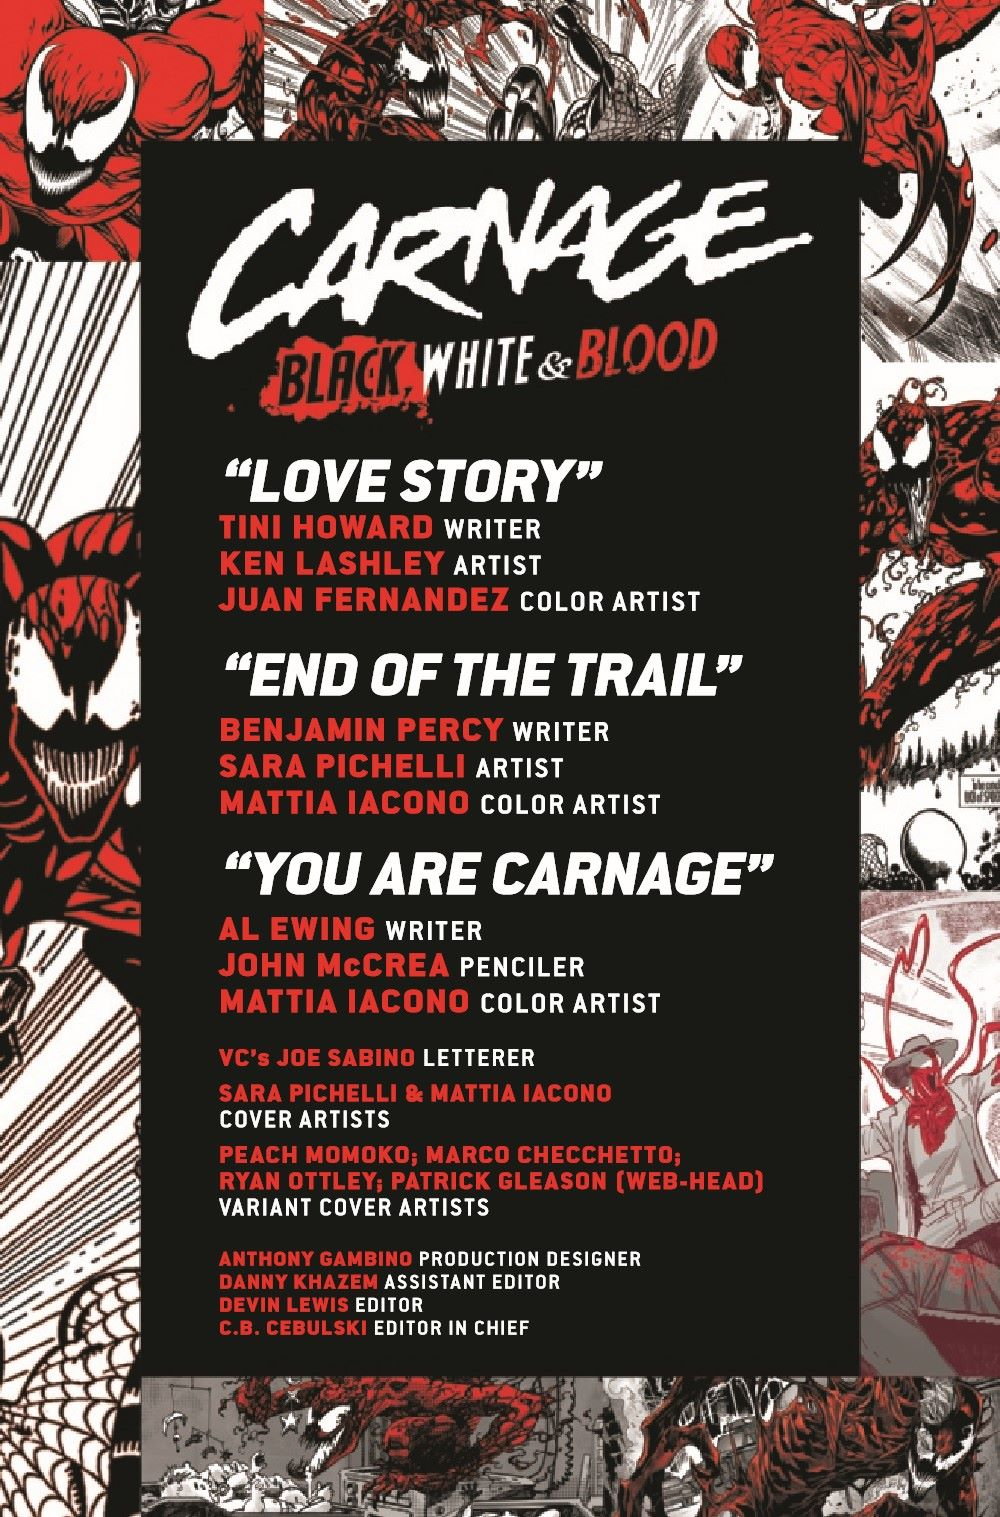 CARNBLKWHBL2021001_Preview-2 ComicList Previews: CARNAGE BLACK WHITE AND BLOOD #1 (OF 4)